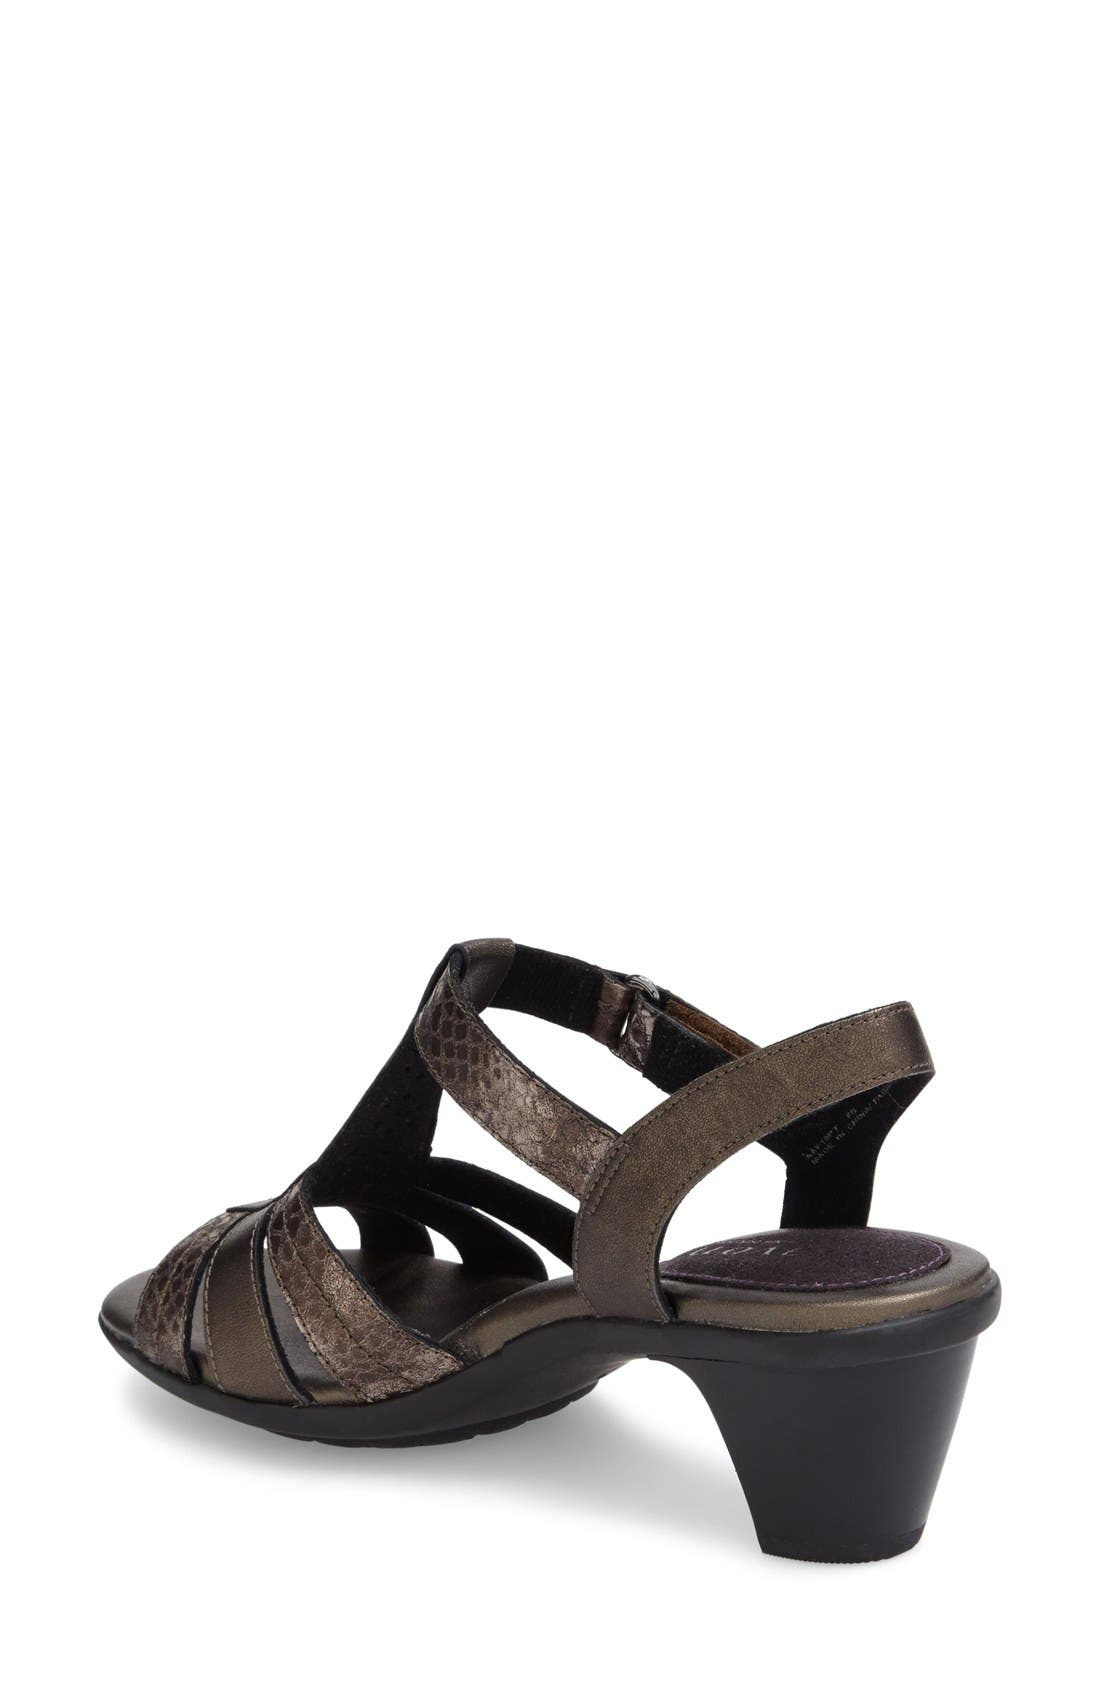 'Mary' T-Strap Sandal,                             Alternate thumbnail 2, color,                             Grey Leather